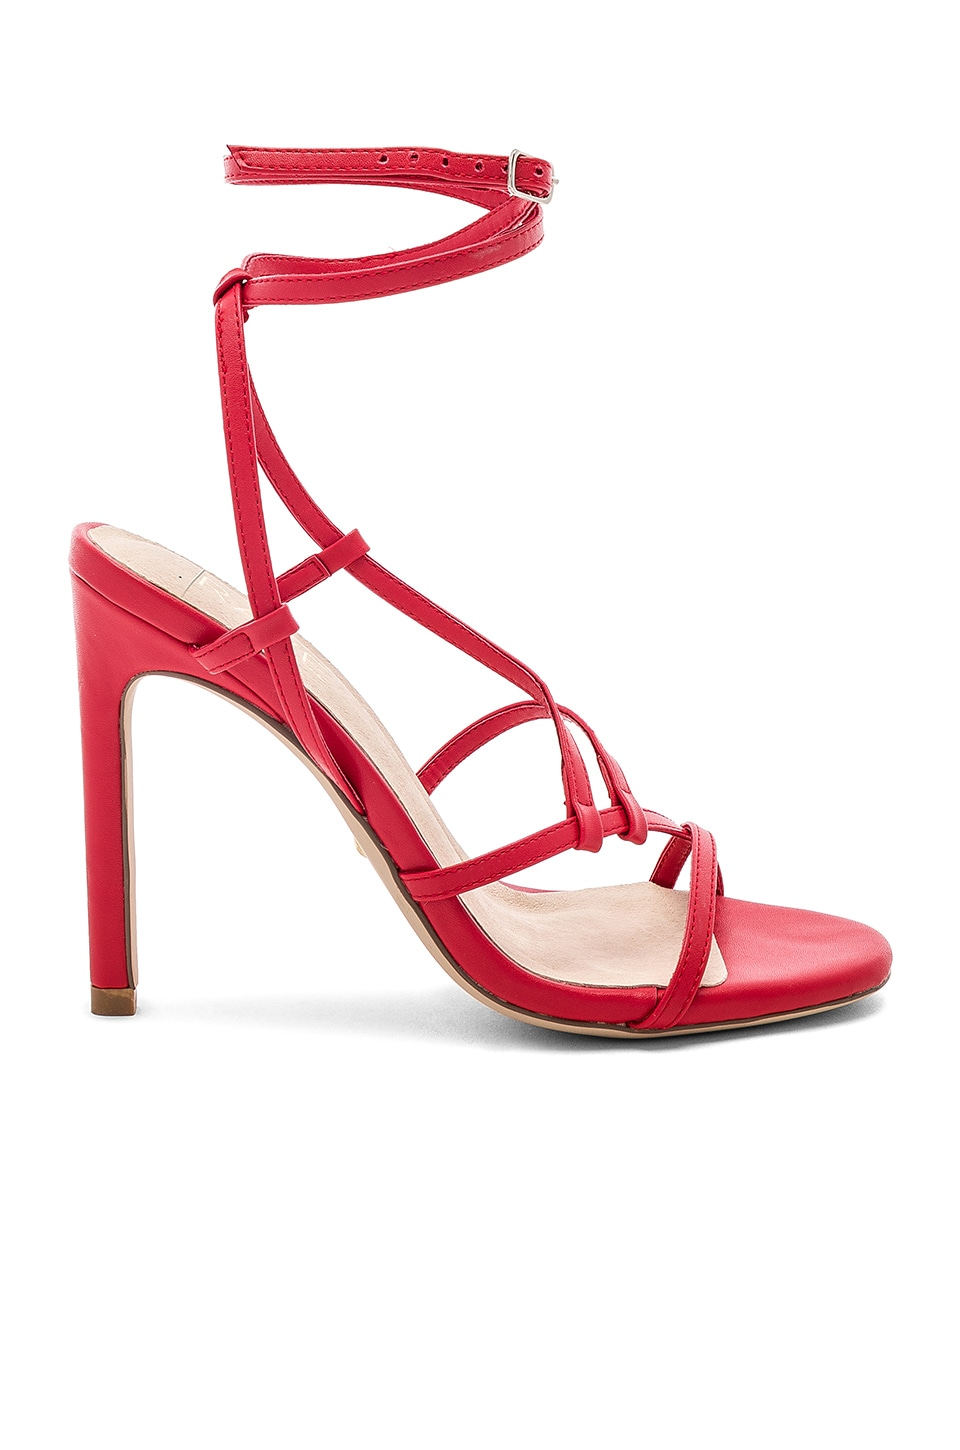 RAYE Martini Heel in Ruby